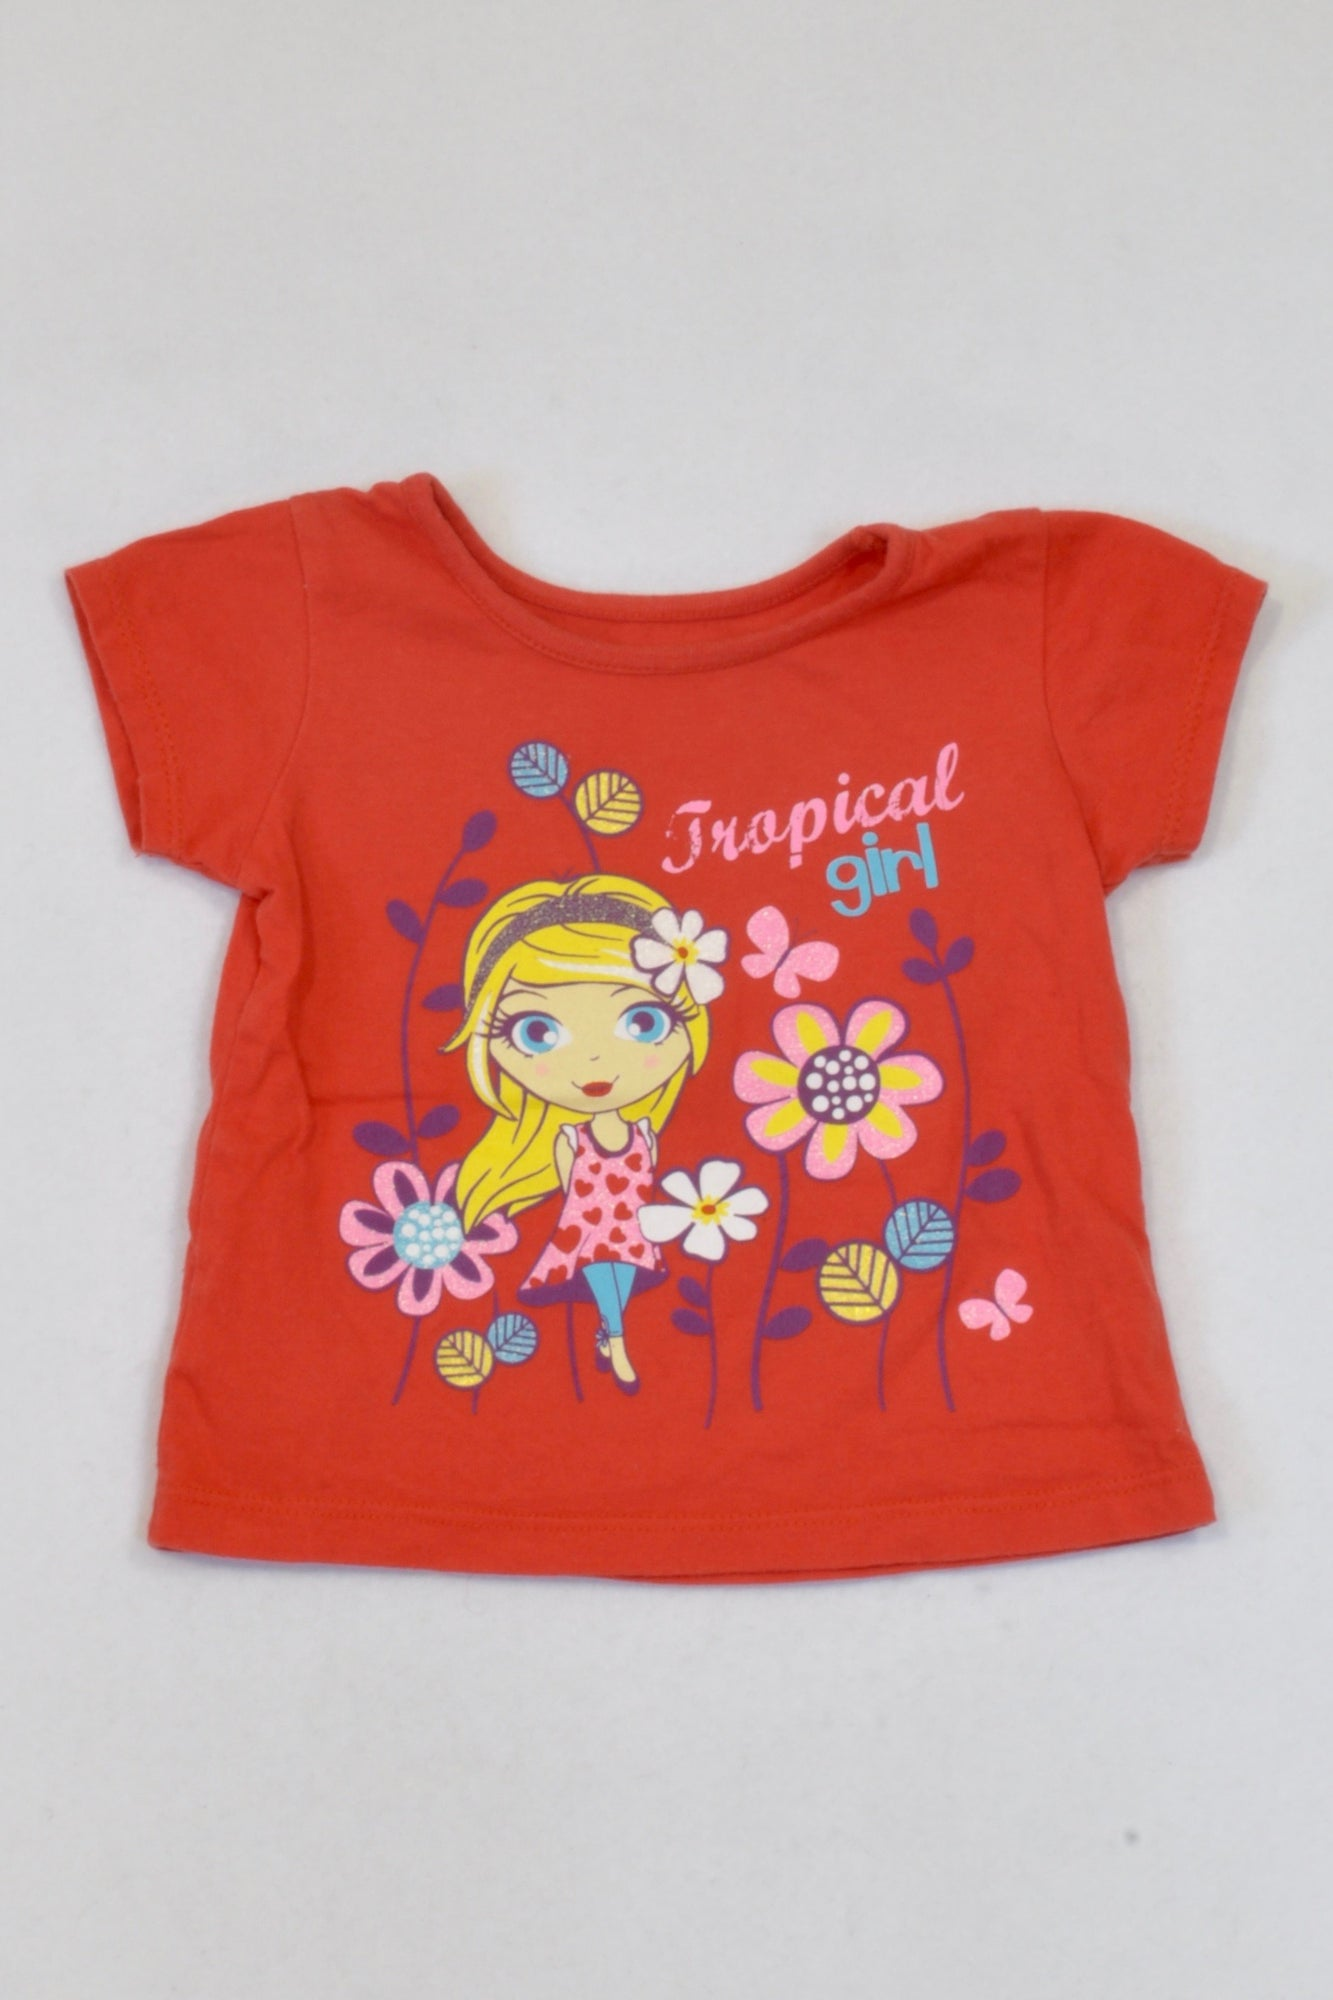 Woolworths Red Tropical Girl T-shirt Girls 3-6 months